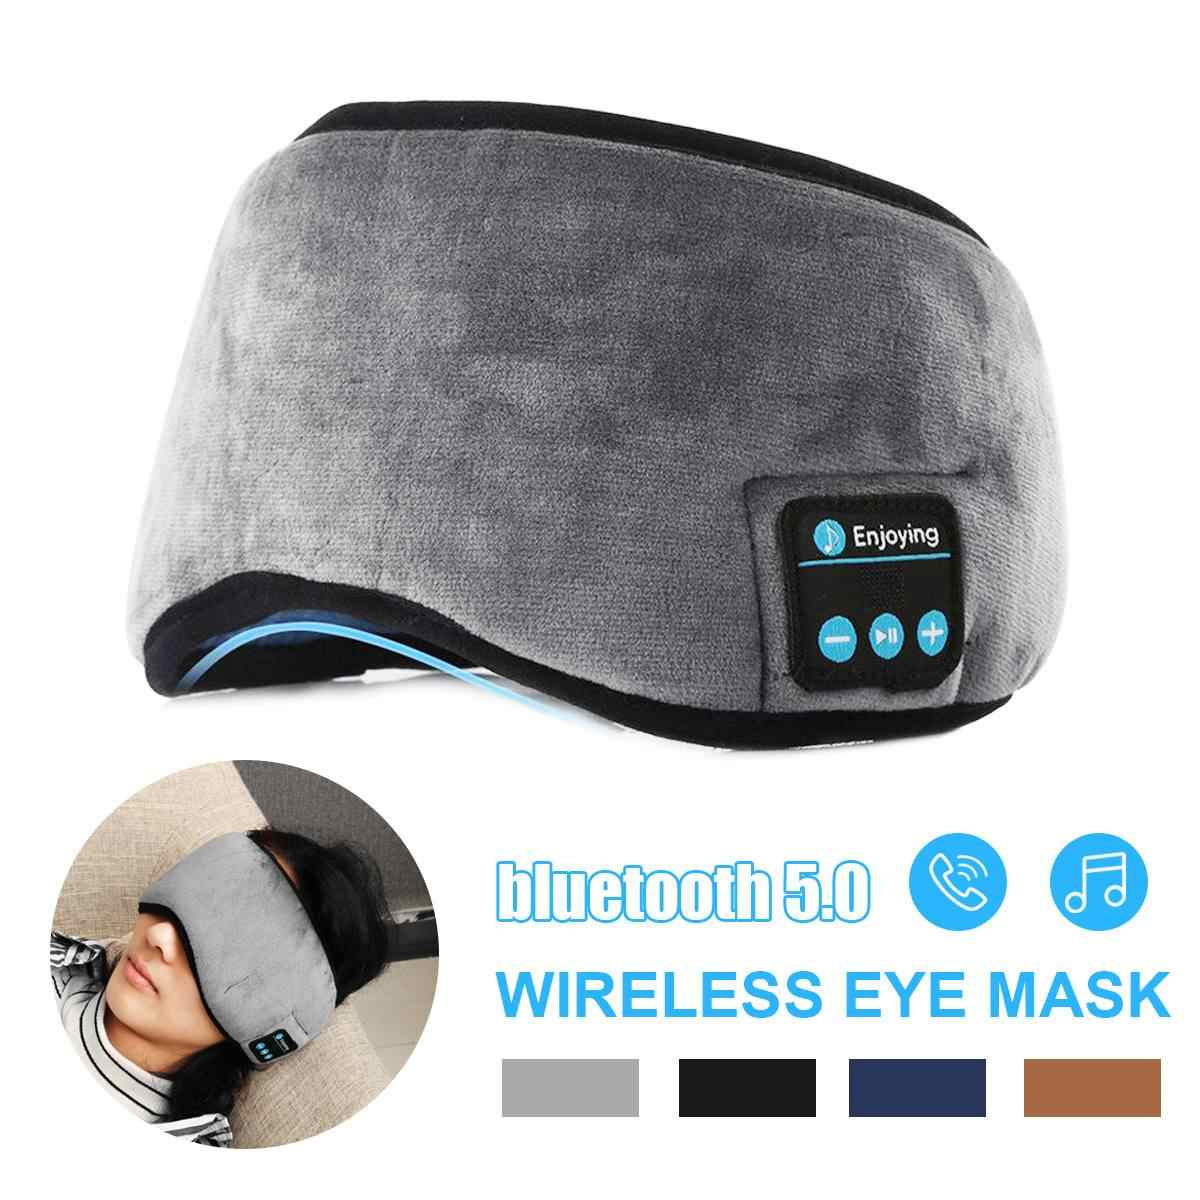 Nirkabel Bluetooth Earphone Masker Mata Bluetooth 5.0 Musik Stereo Tidur Headset Perjalanan Warna Mata dengan Built-In Speaker MIC